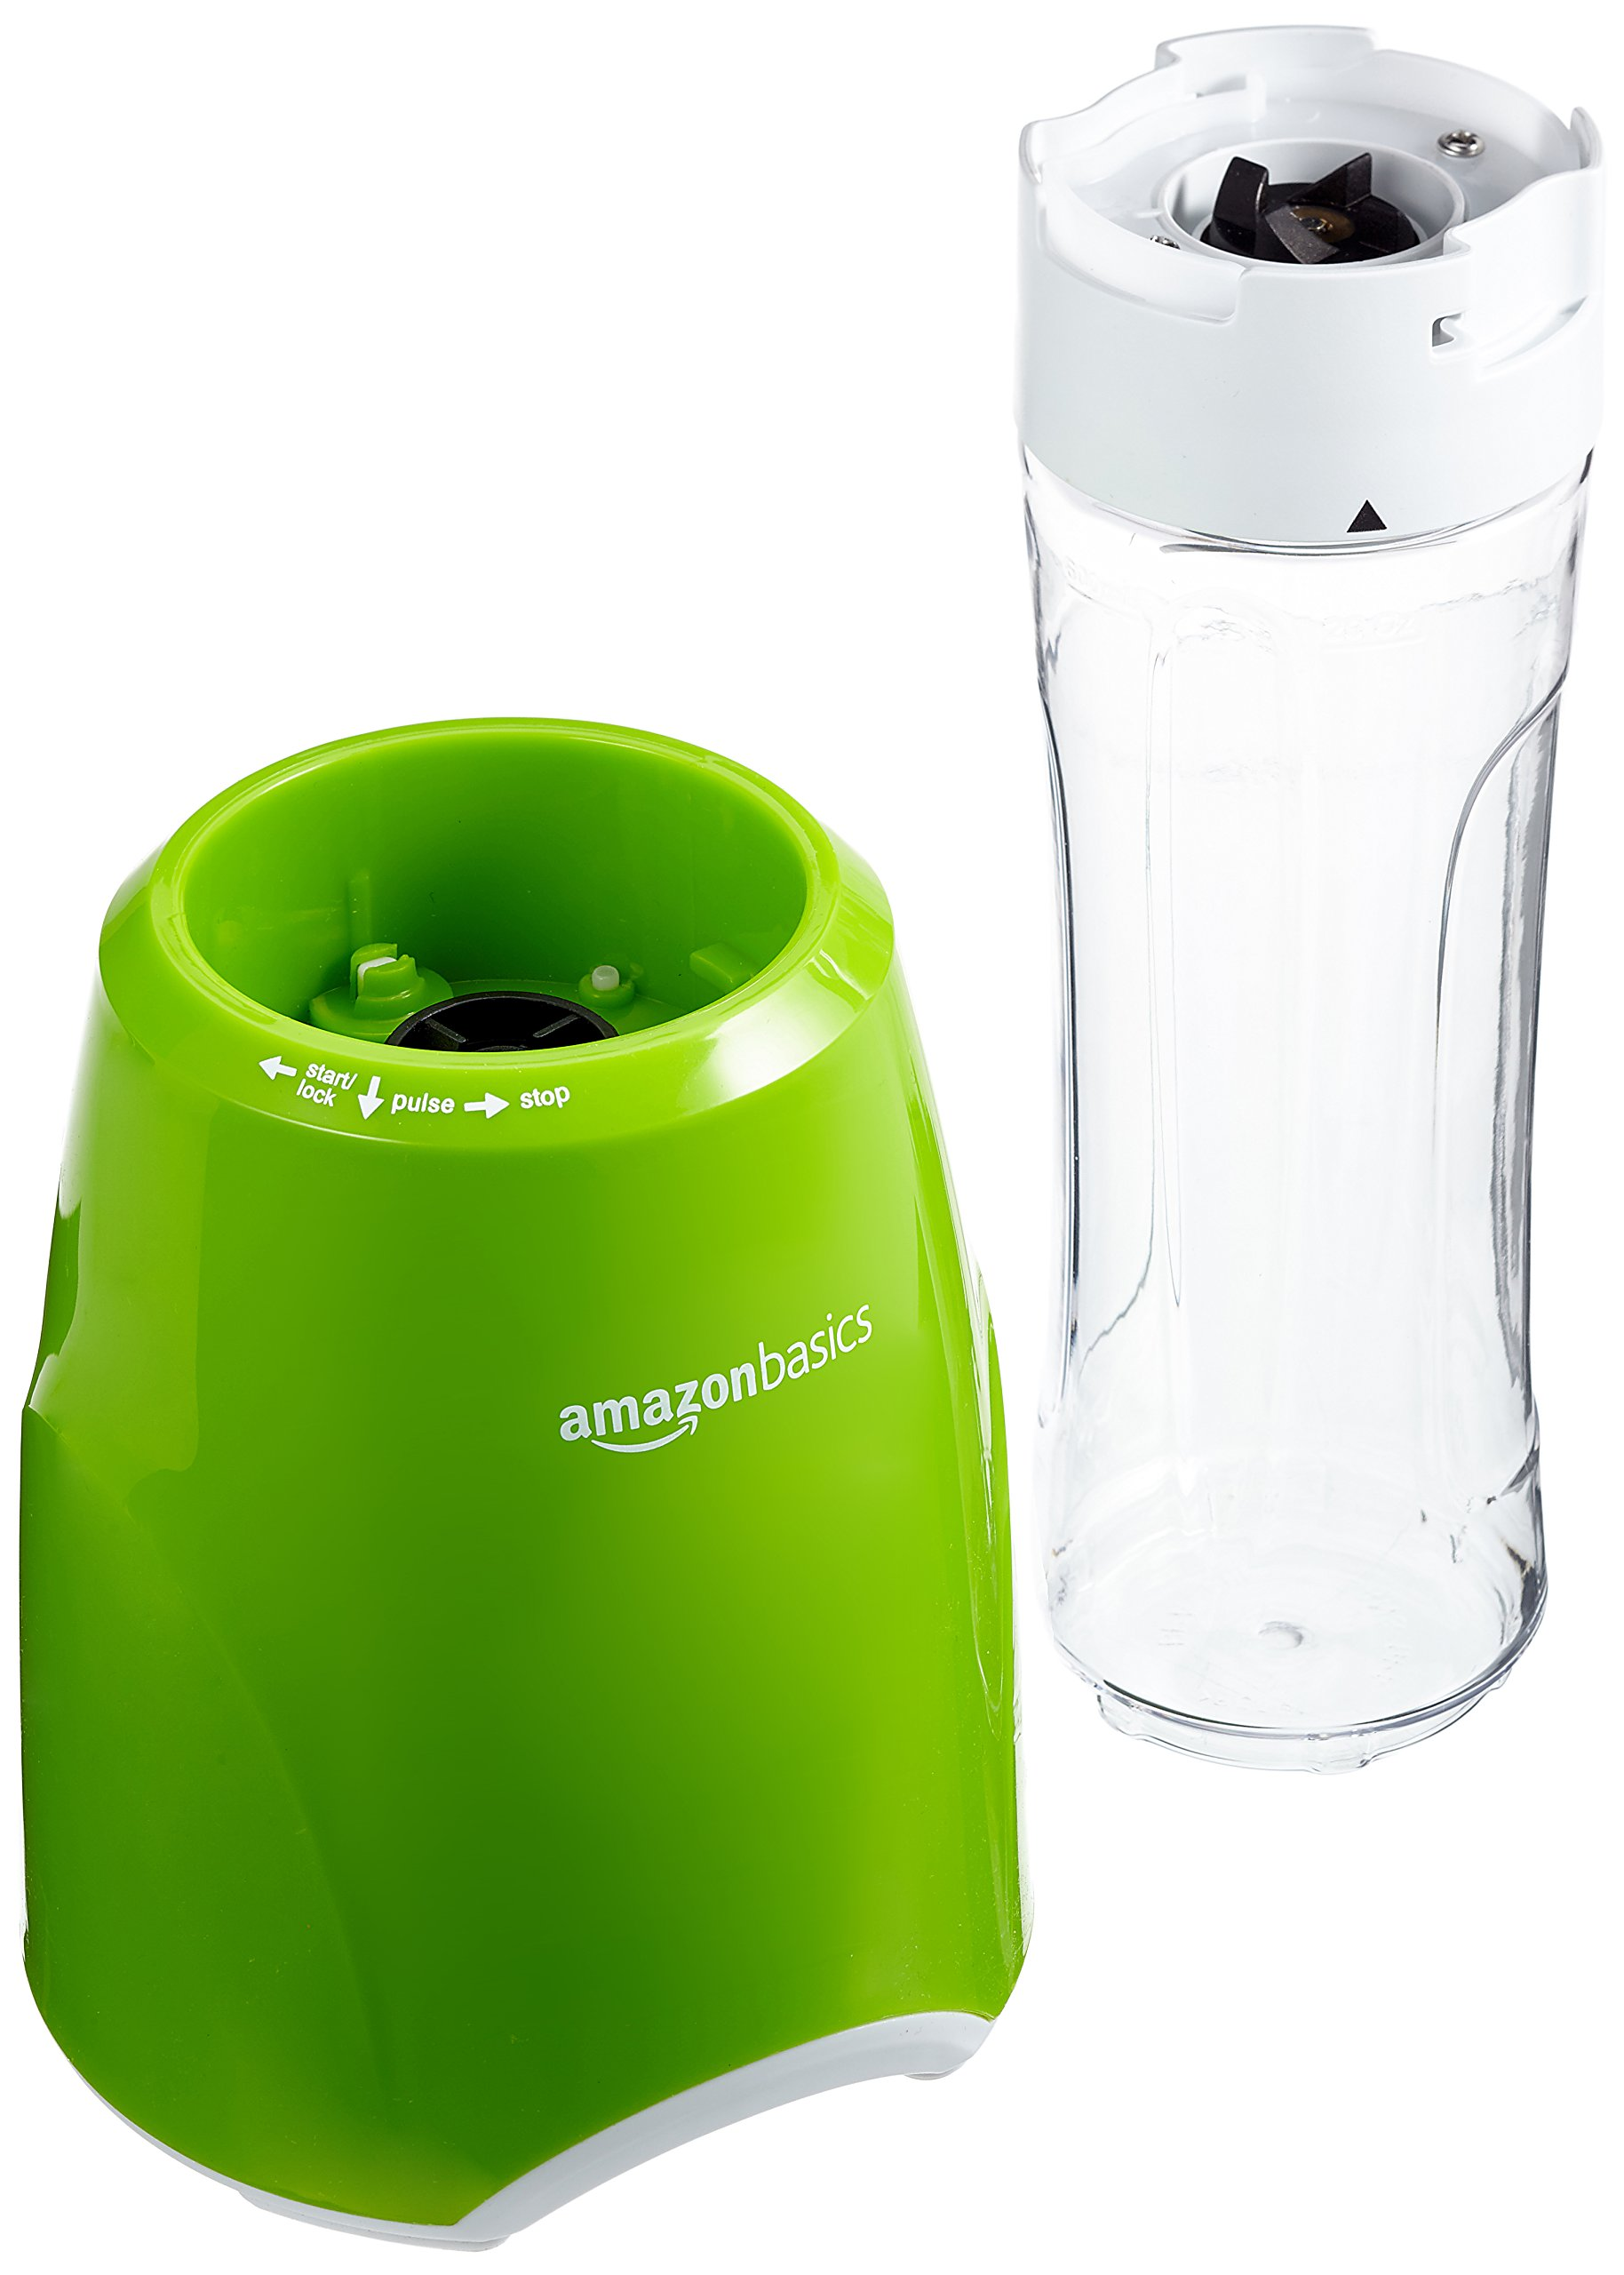 AmazonBasics-Mixer-Mix-Go-Leistung-300-W-Grn-PARENT